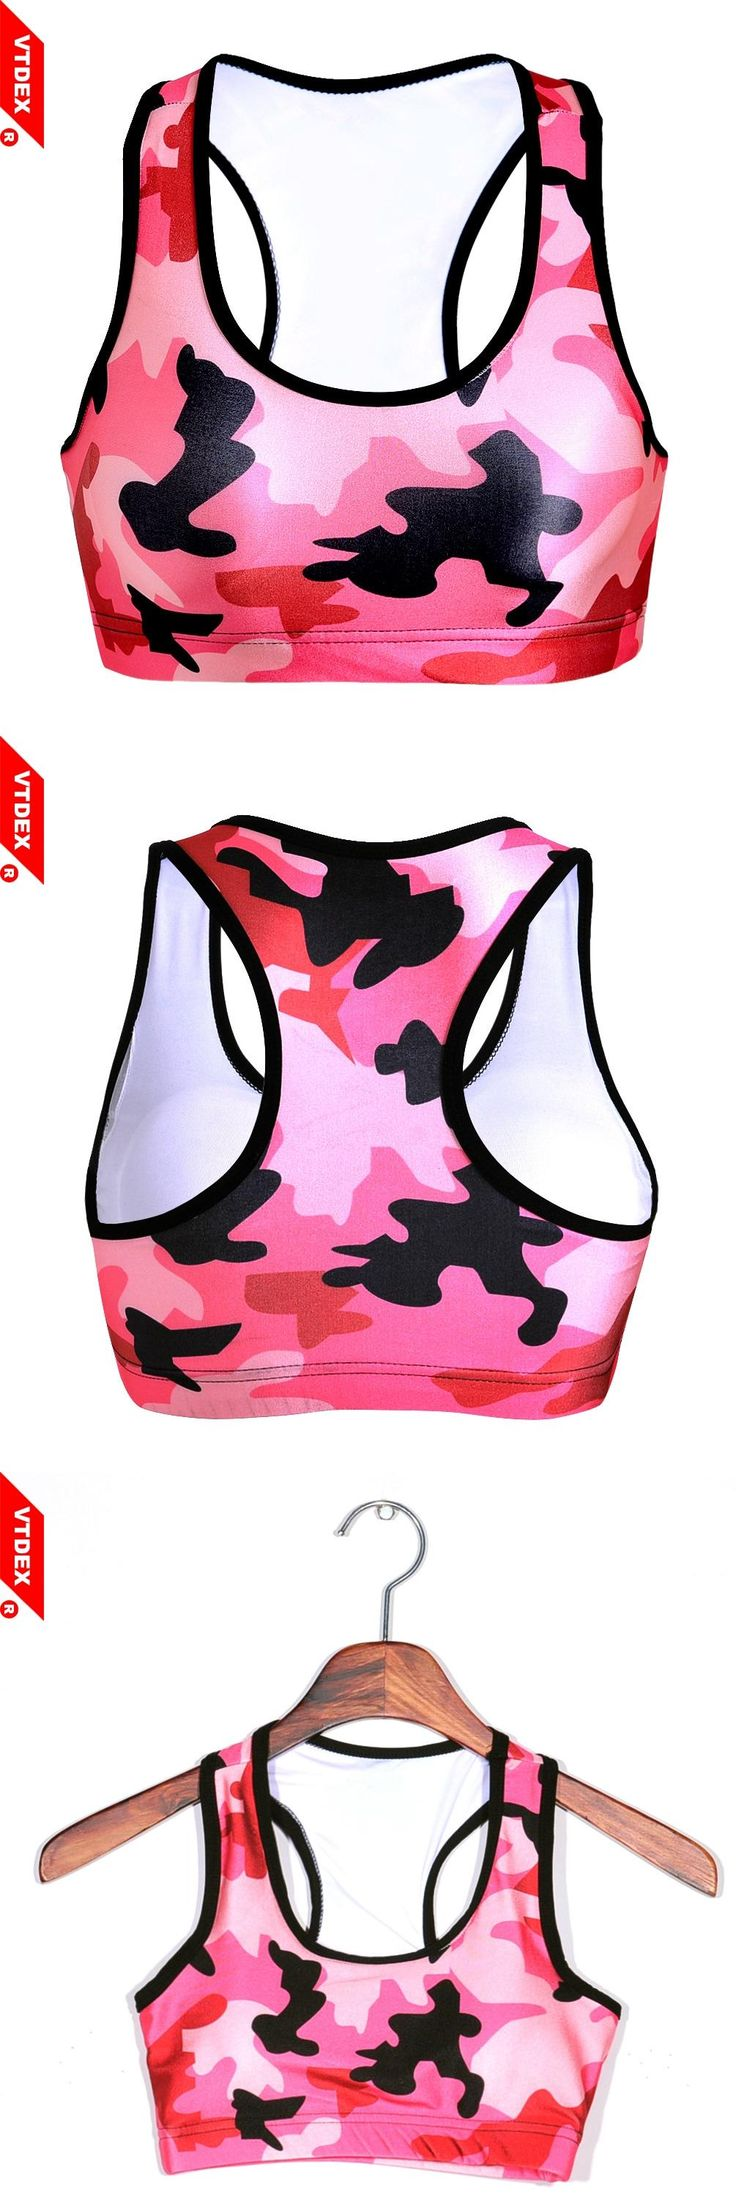 [Visit to Buy] VTDEX 2017 Fitness Bras Women Soutien Gorge Padded Push Up Bra 3d Camouflage Sports Gym Wirefree Shakeproof Seamless Workout Top #Advertisement